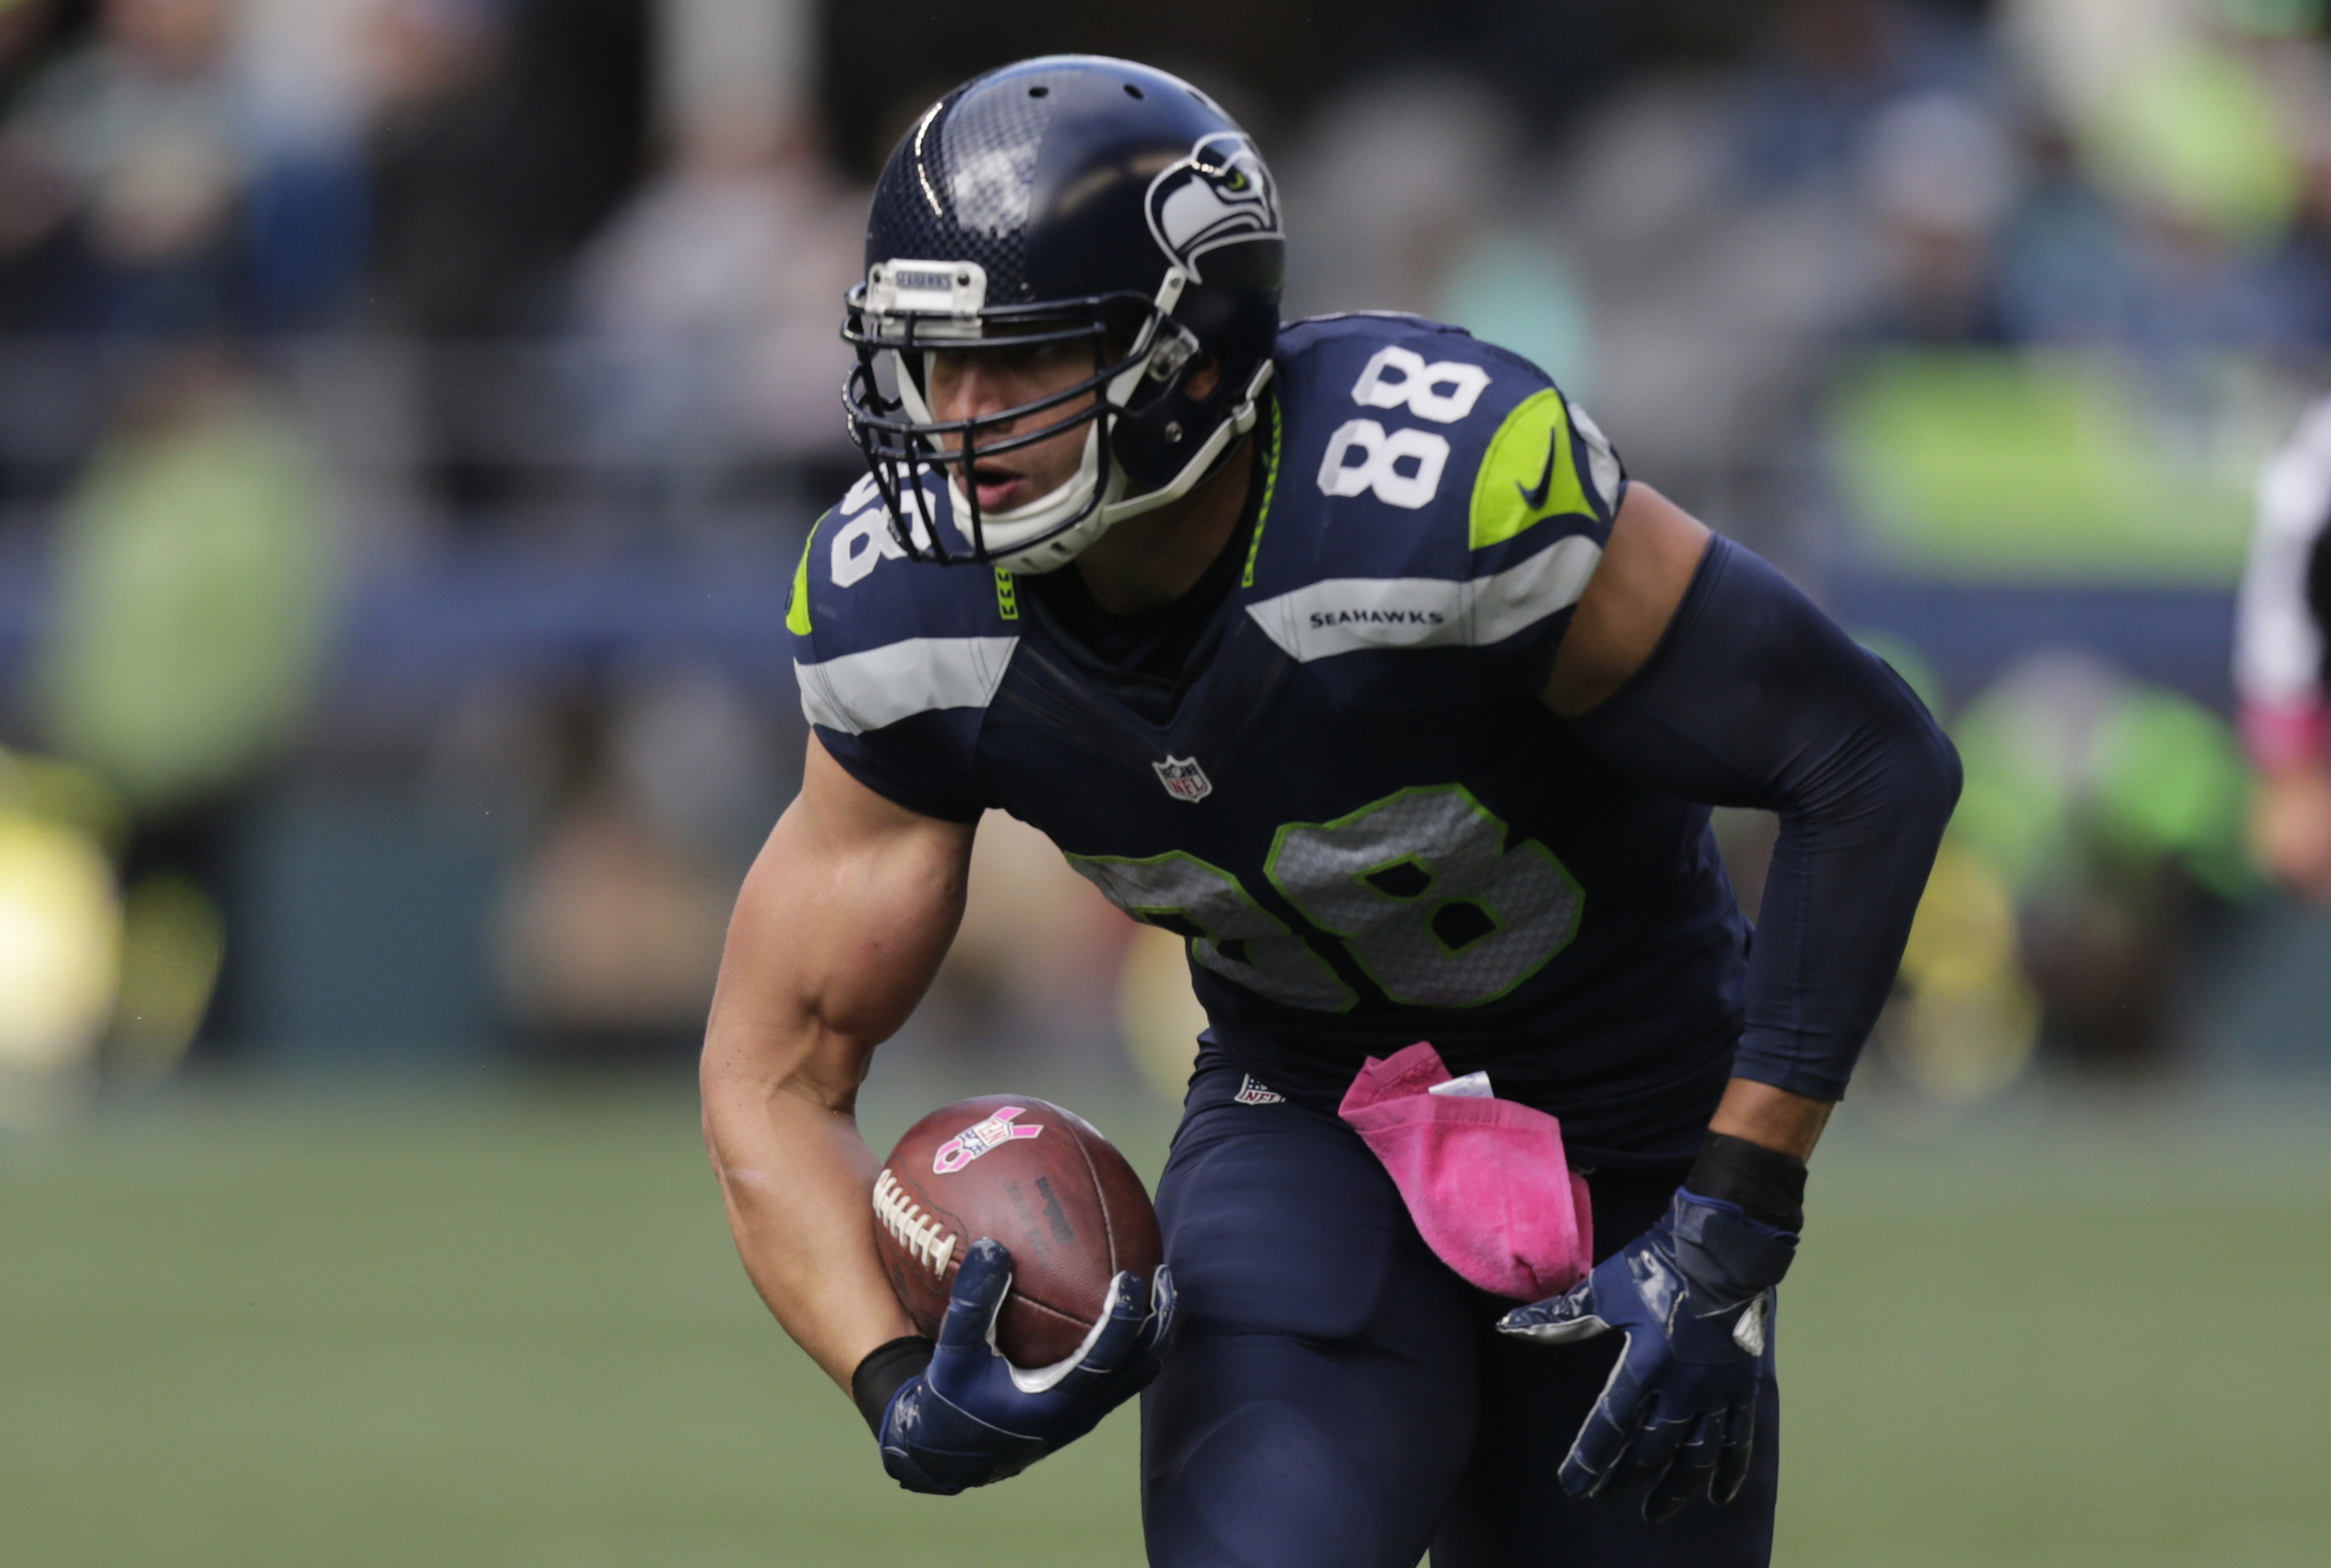 FILE - In this Oct. 16, 2016, file photo, Seattle Seahawks tight end Jimmy Graham runs the ball after a reception during an NFL football game against the Atlanta Falcons in Seattle. An NFL football game Sunday, Oct. 30, 2016, will mark the first time Grah